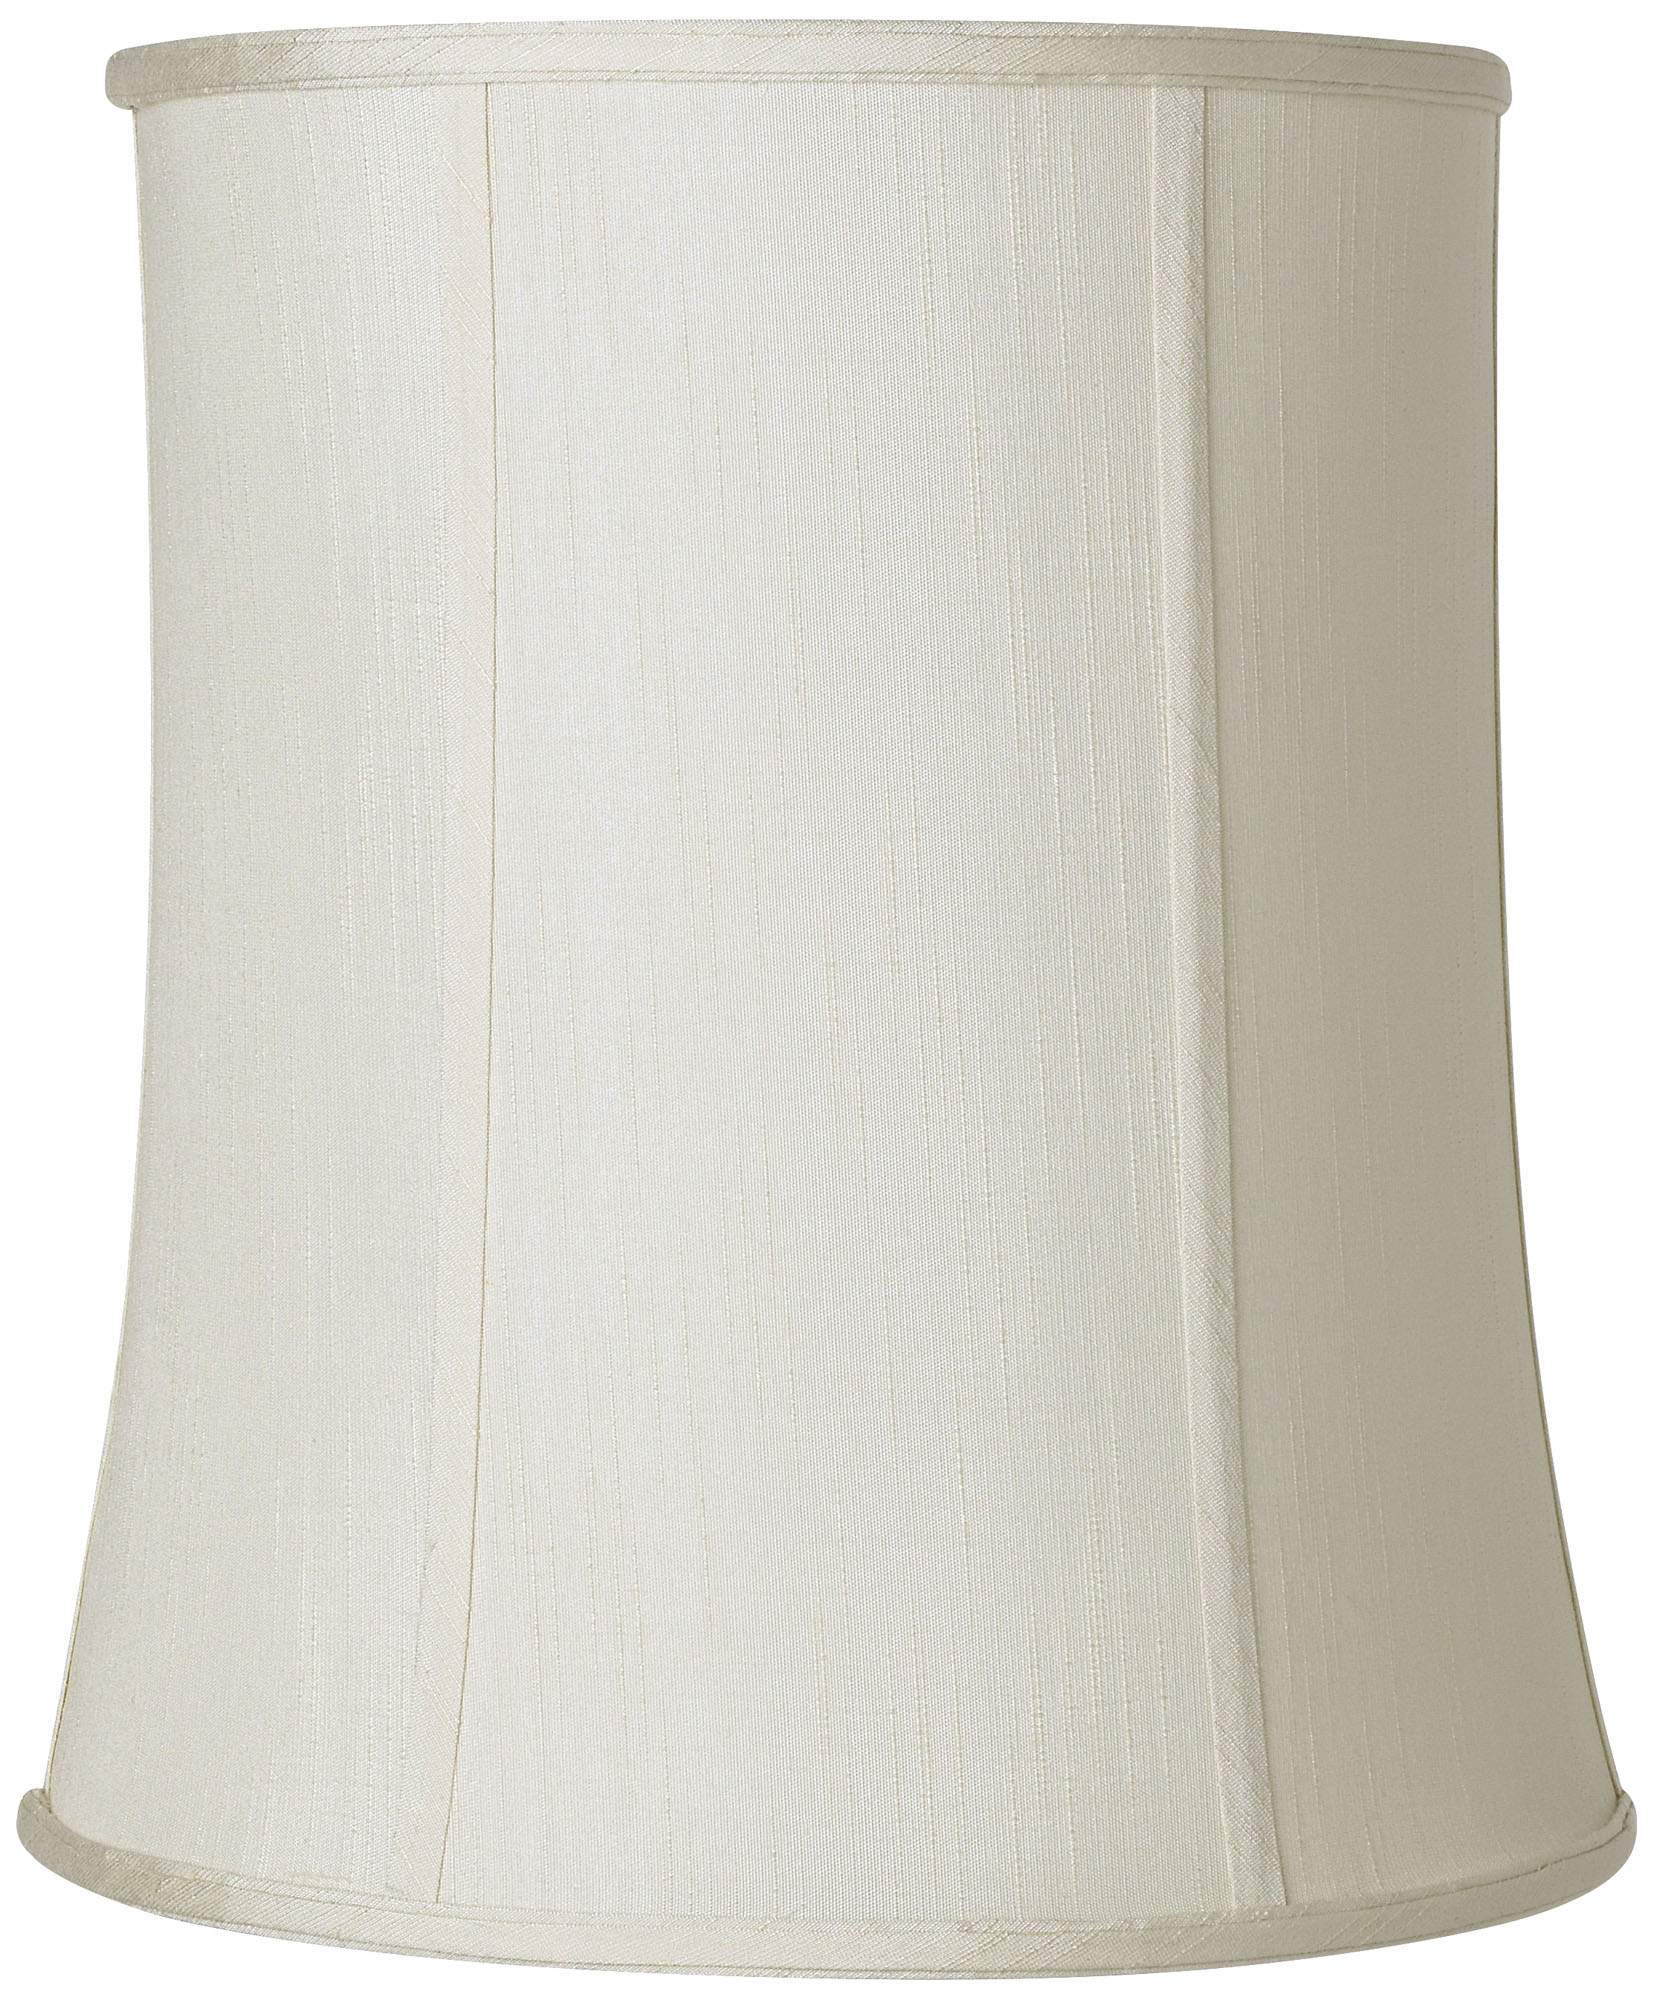 Imperial Collection Creme Deep Drum Shade 12x14x16 Spider